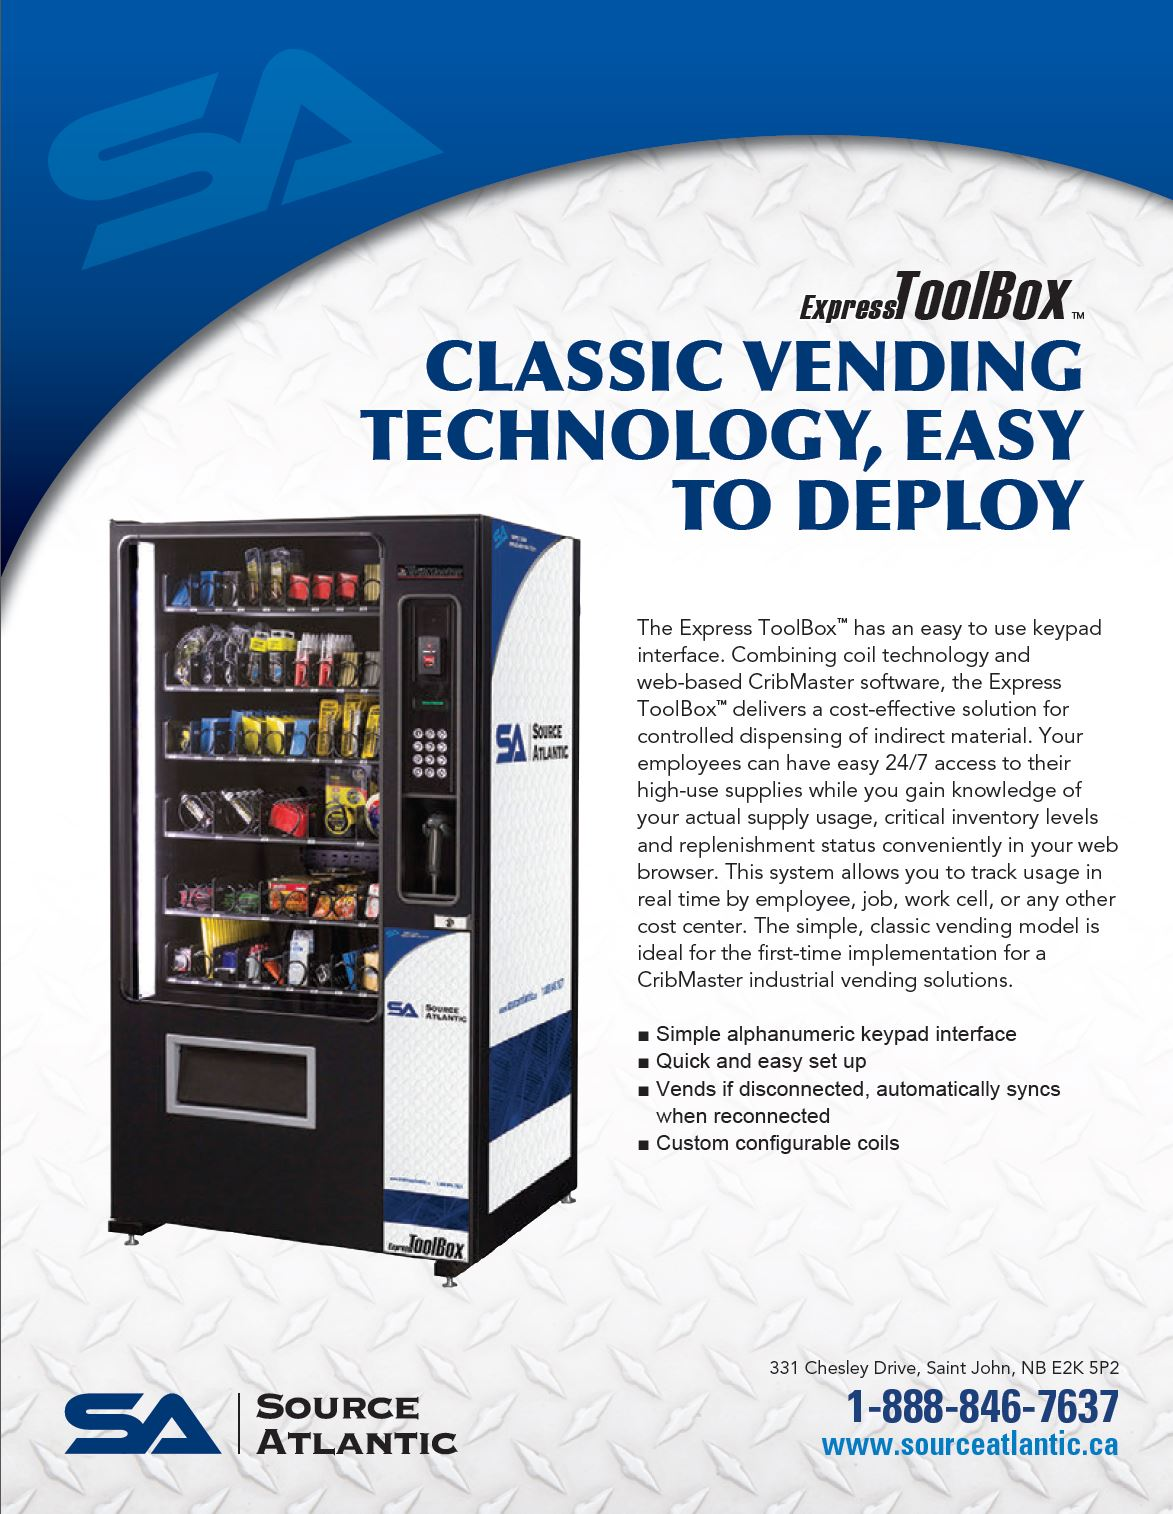 CLASSIC VENDING TECHNOLOGY, EASY TO DEPLOY ToolBoxTM